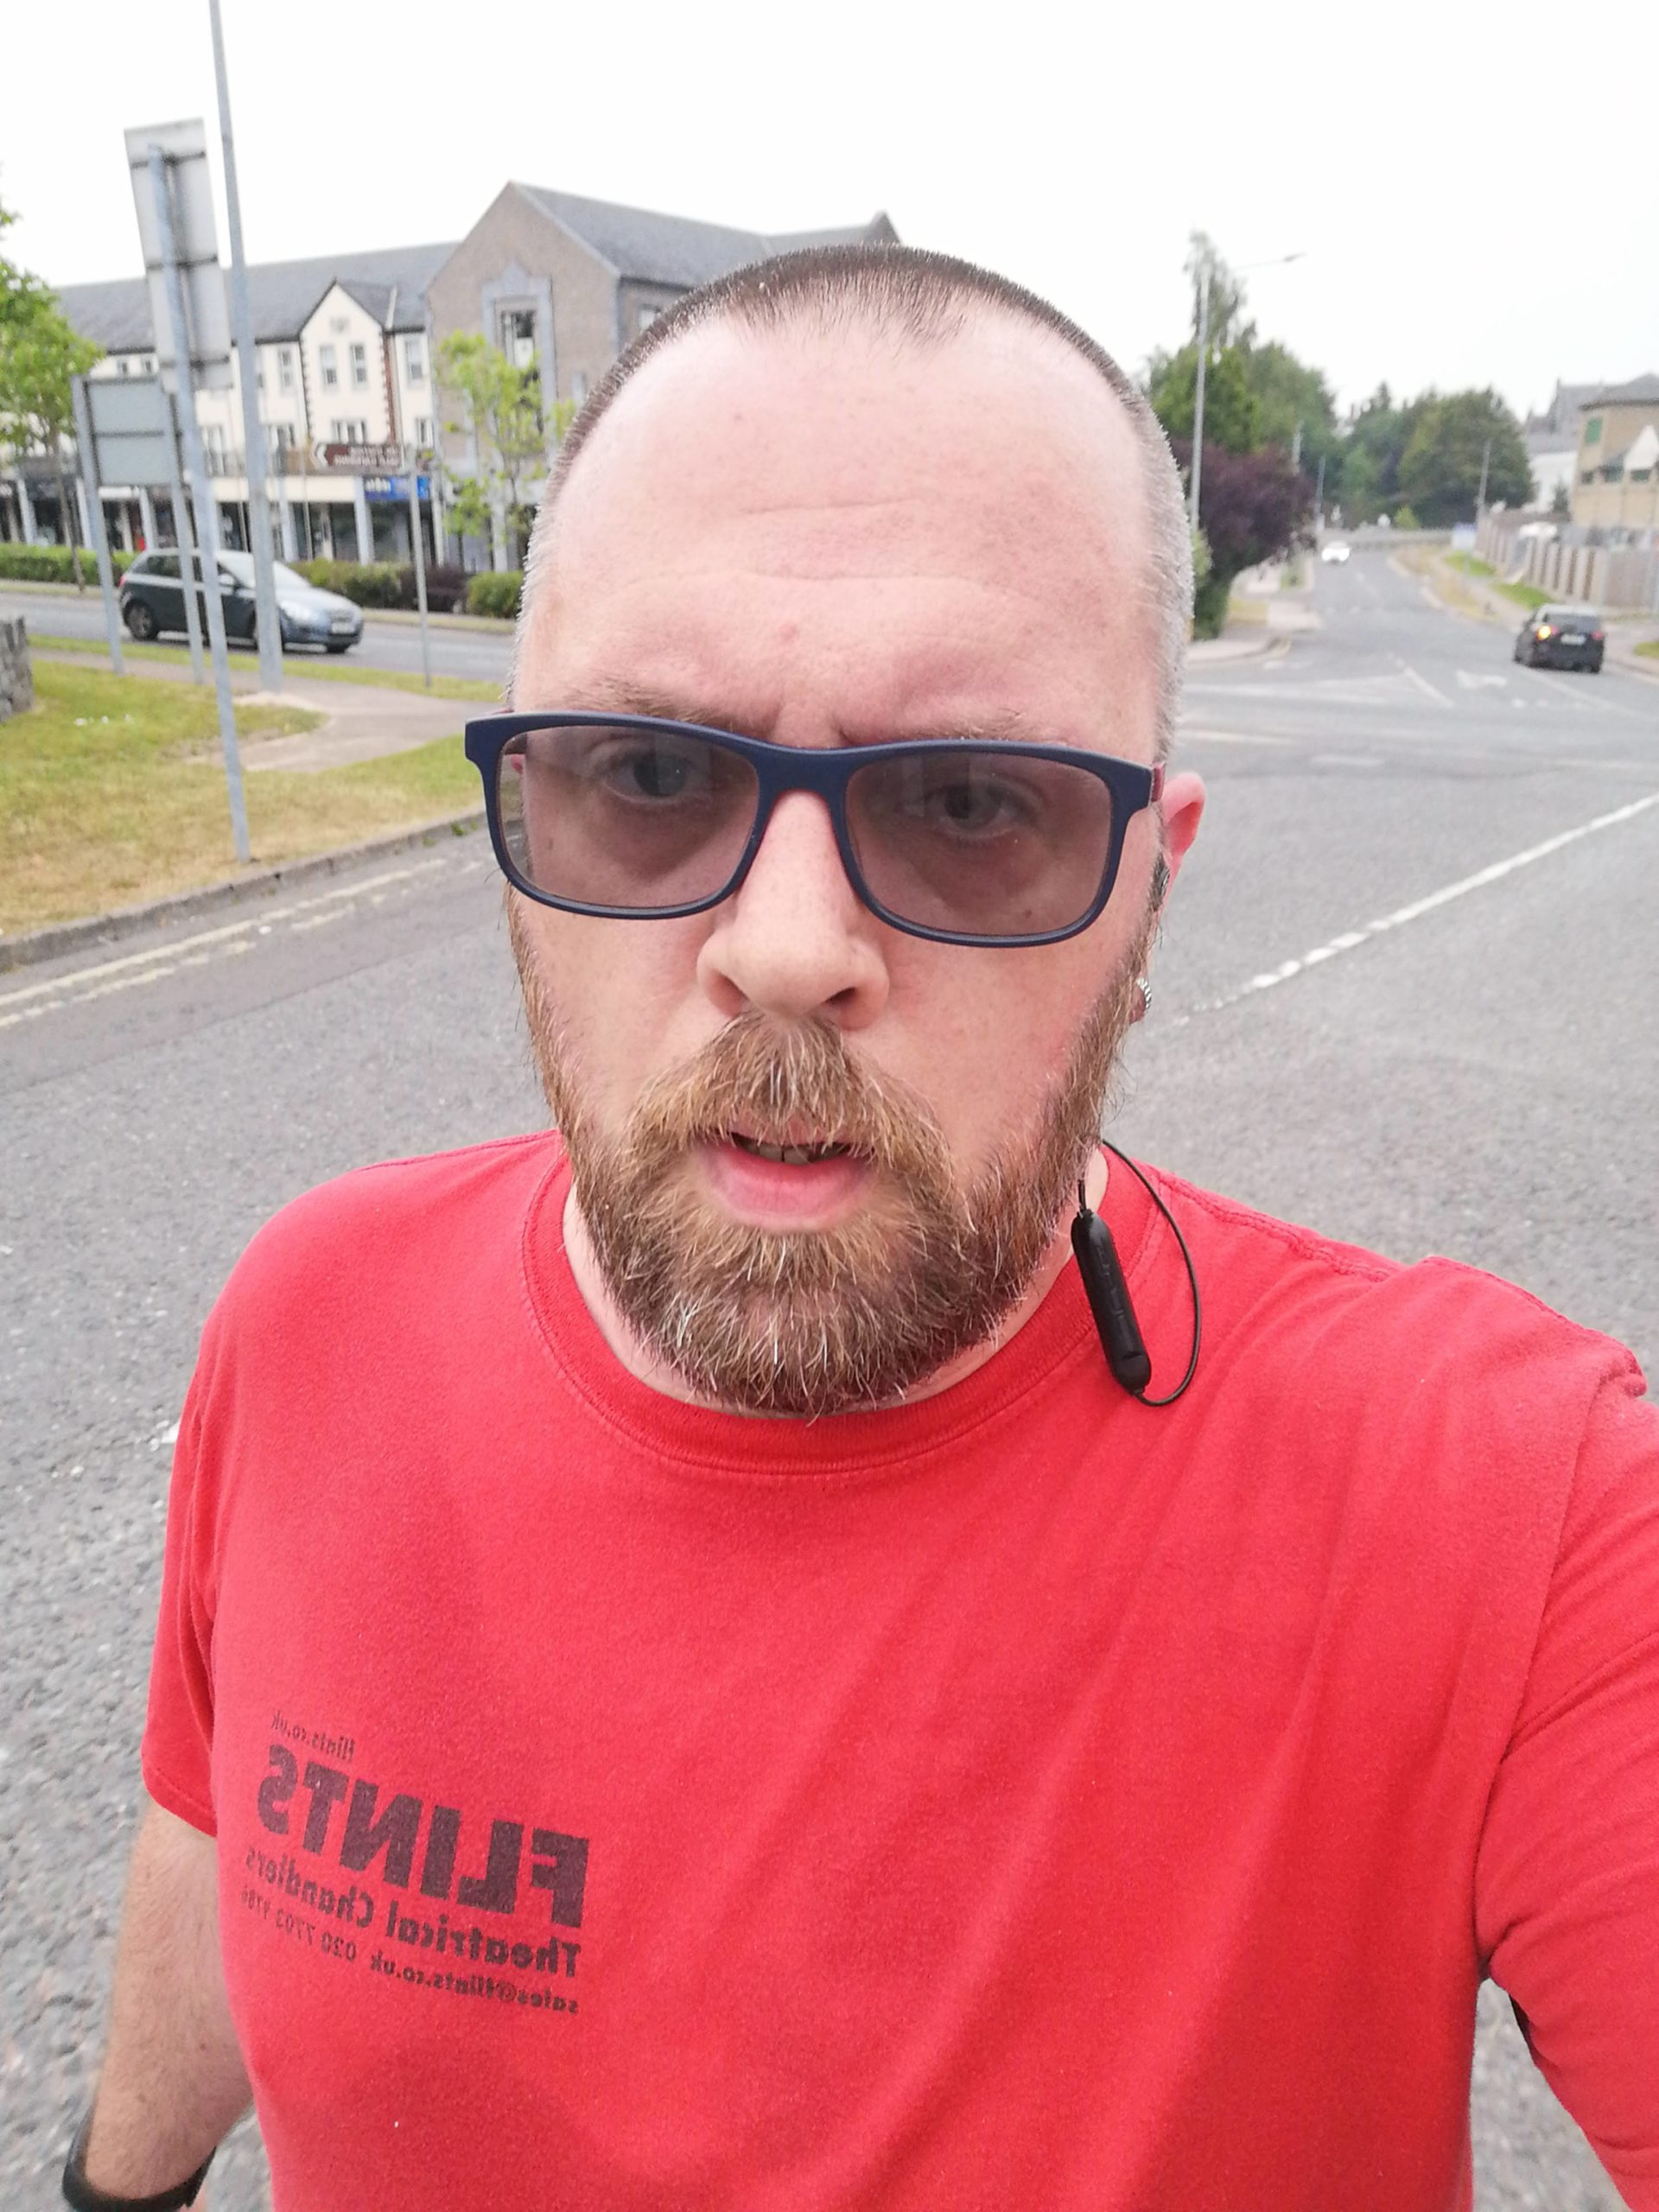 A man in a red t-shirt with sunglasses running on a tarmac road